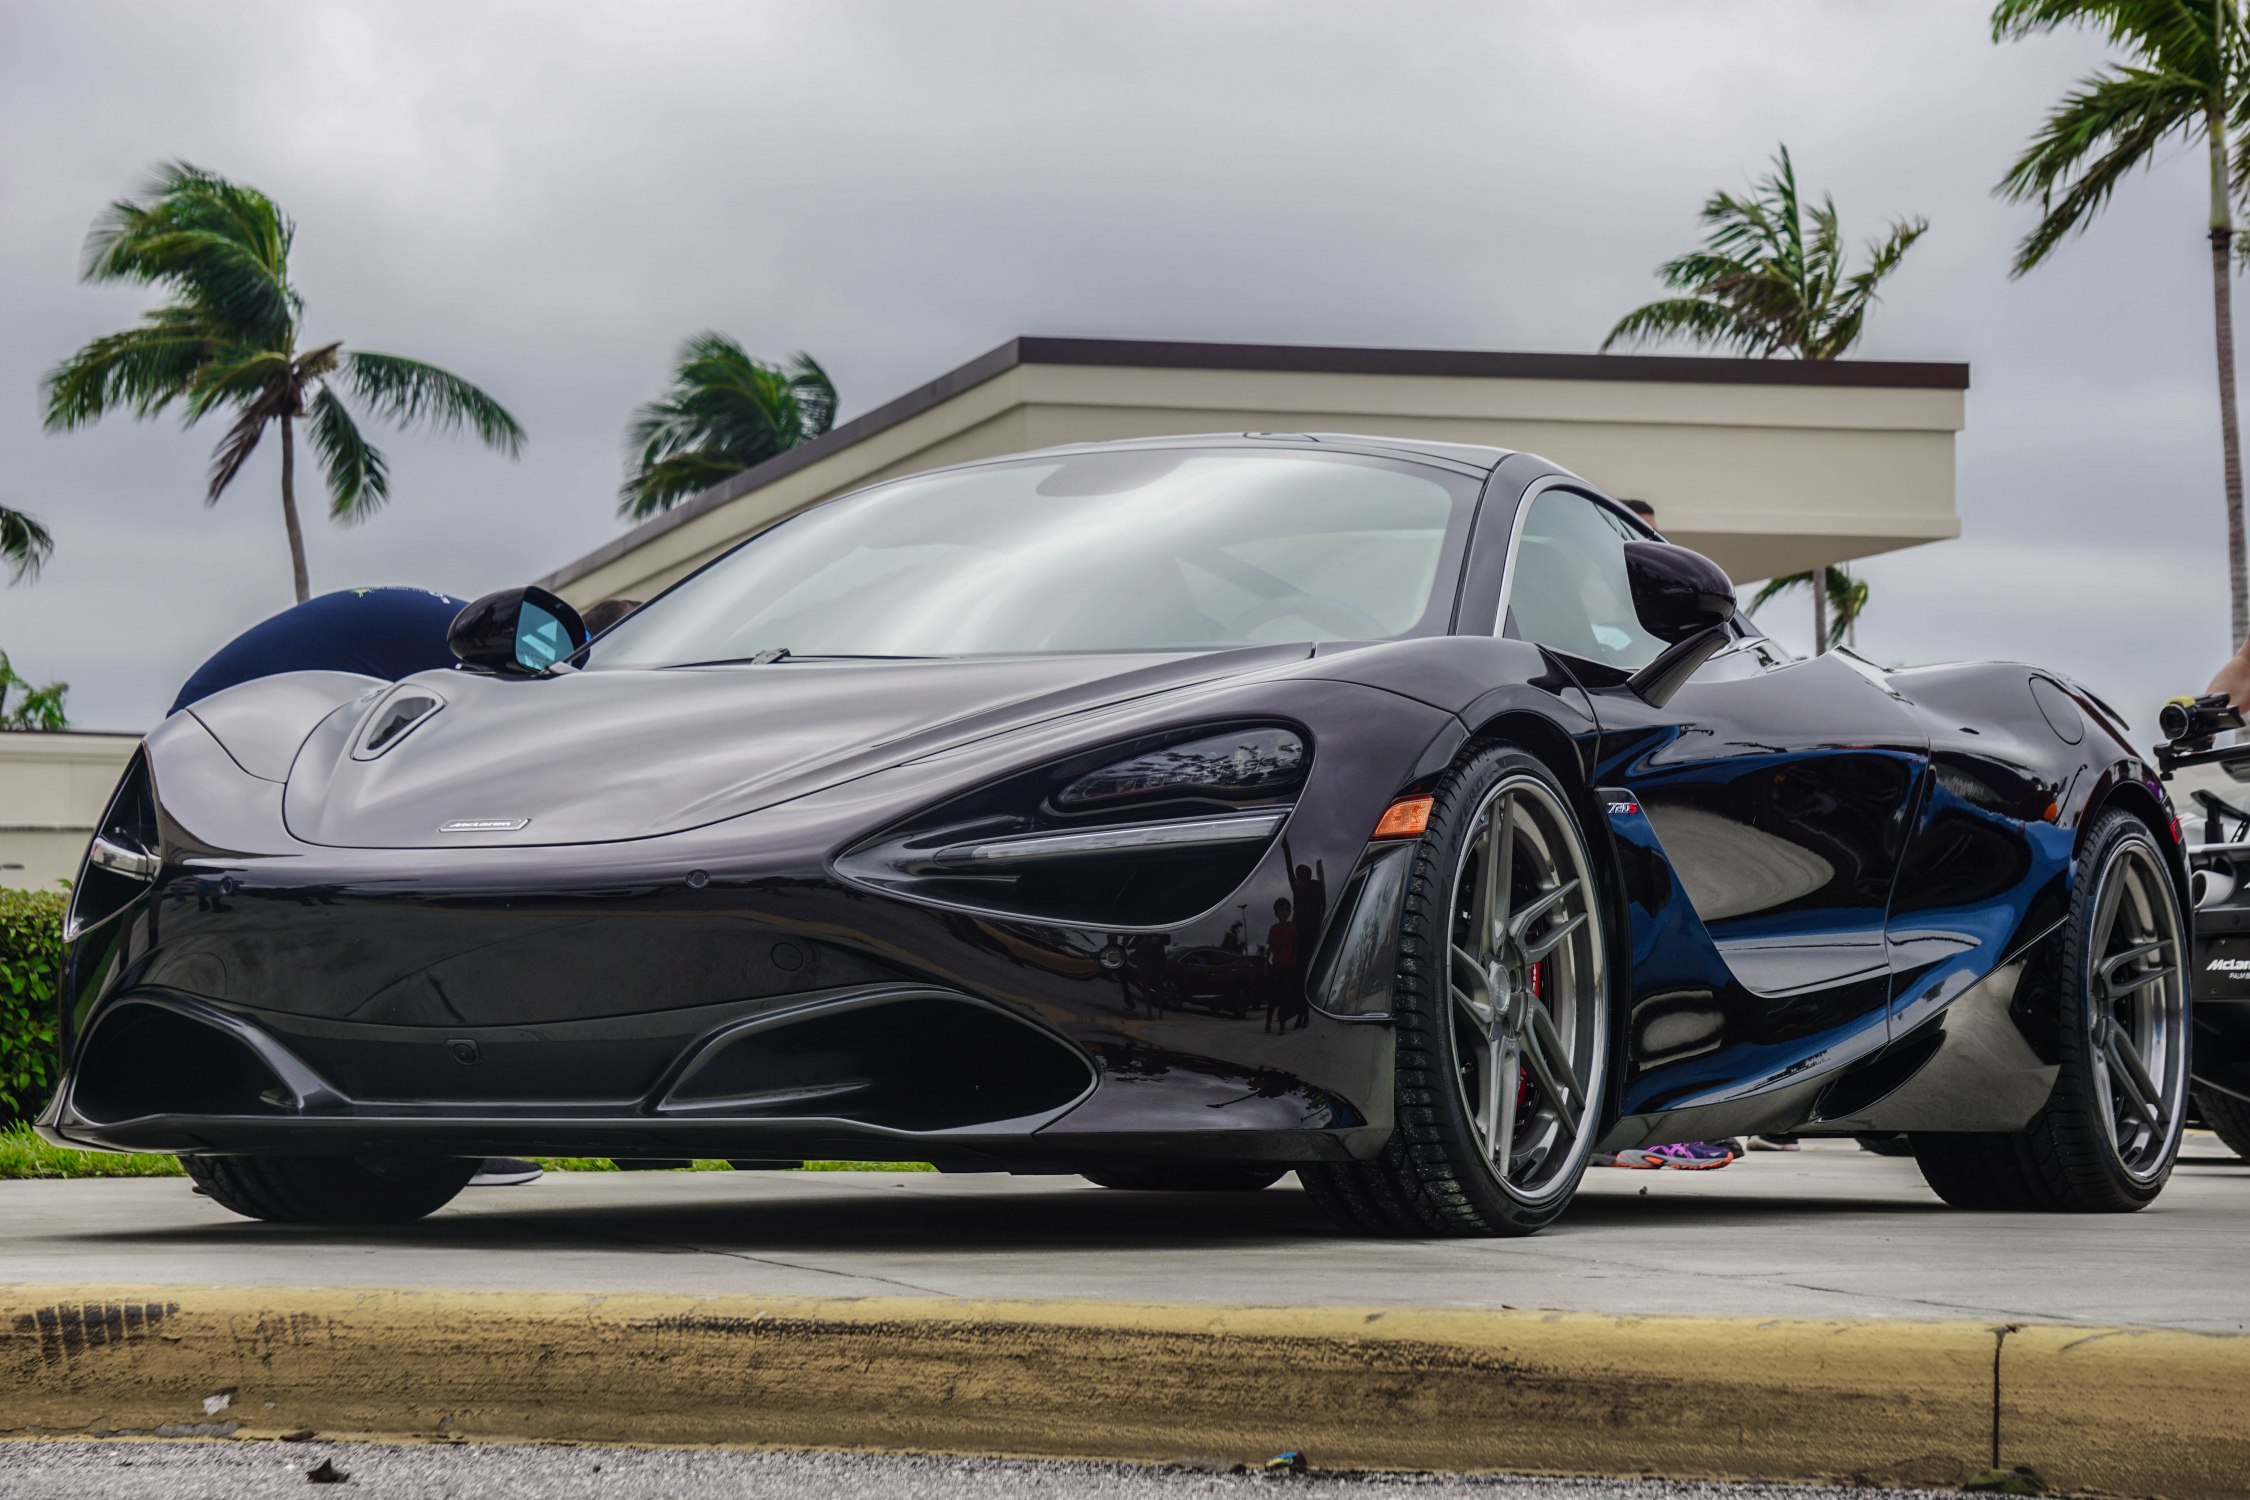 Mclaren 720s Forged Rotational Concave Wheels